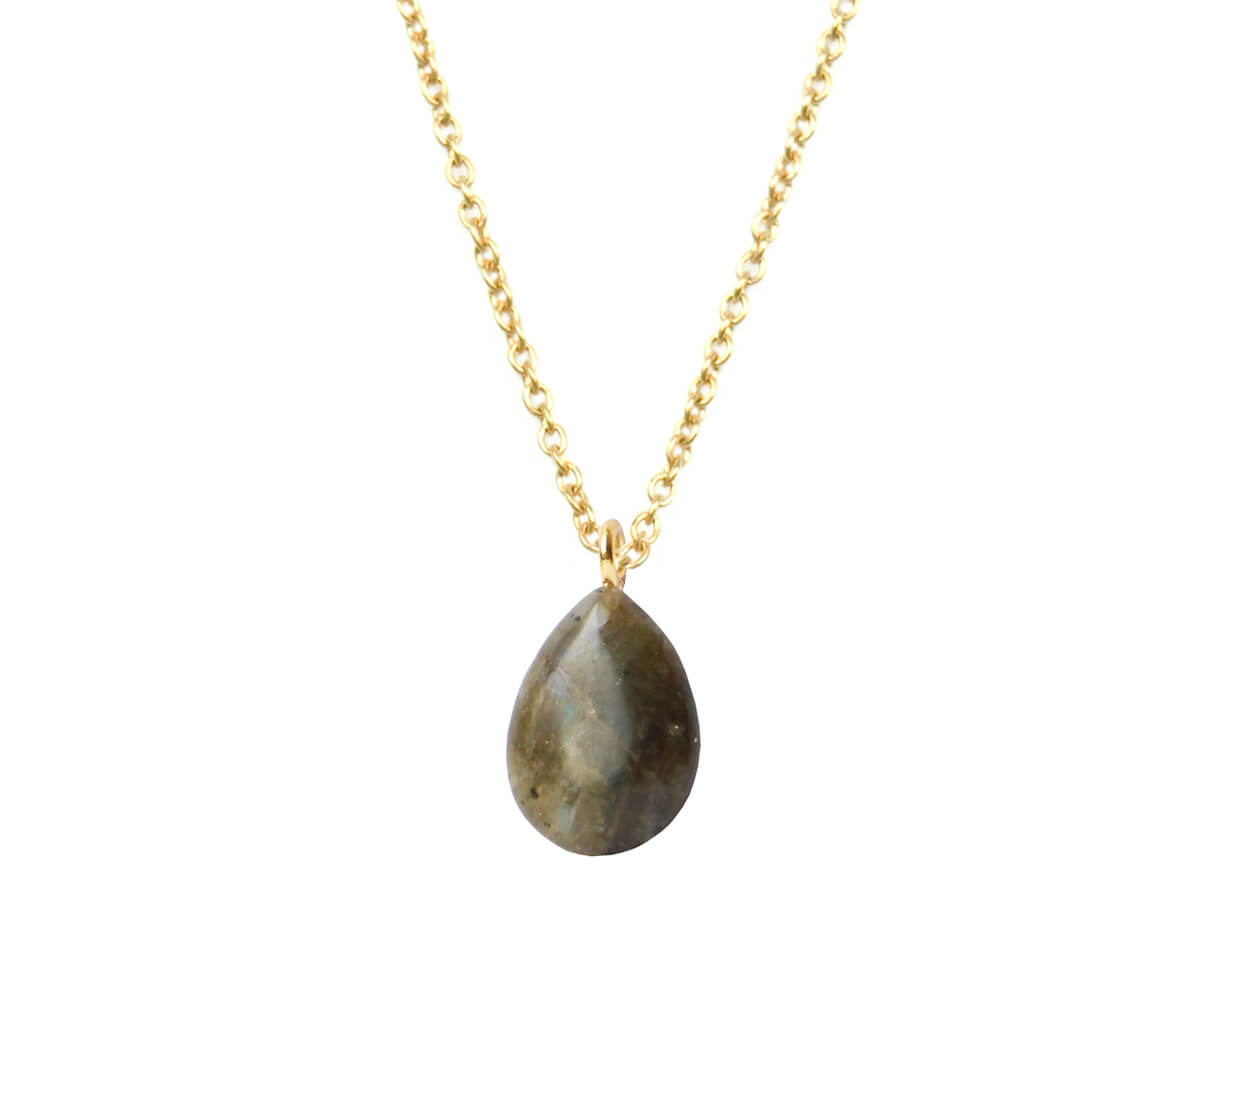 Mas Jewelz necklace long with Pendant Labradorite Gold